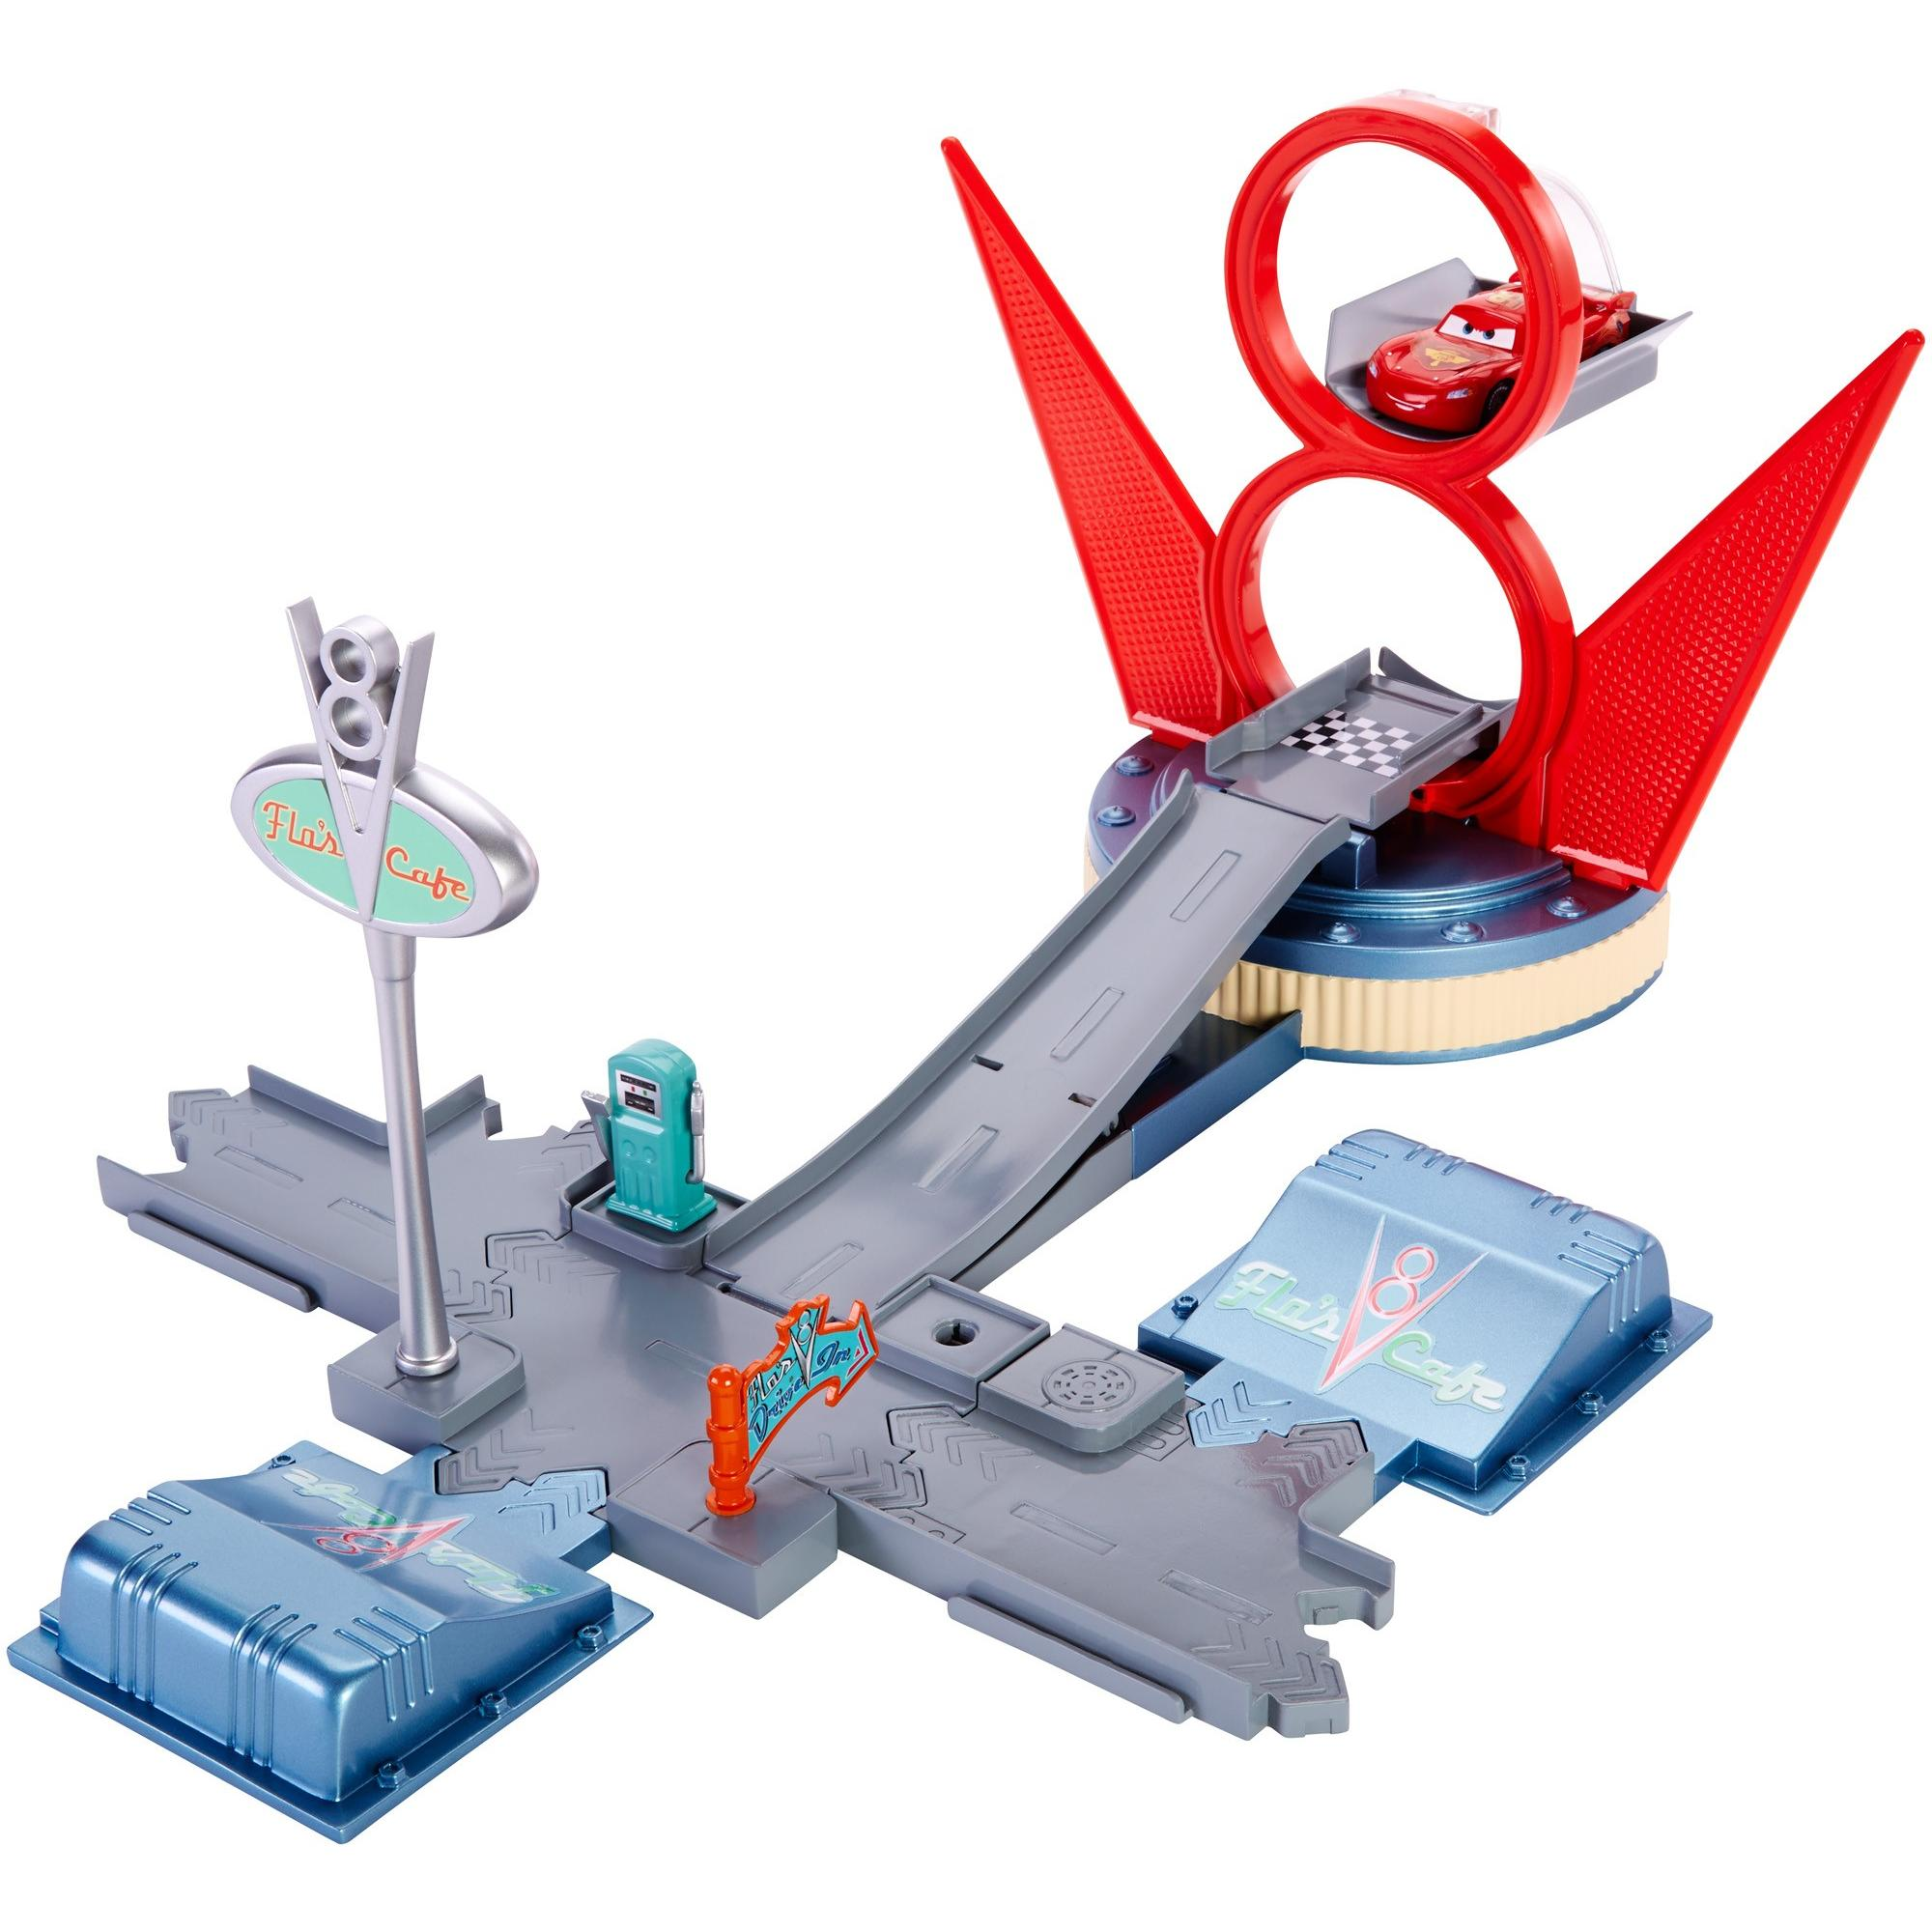 Cars - Disney Cars Story Sets Playset Asrt